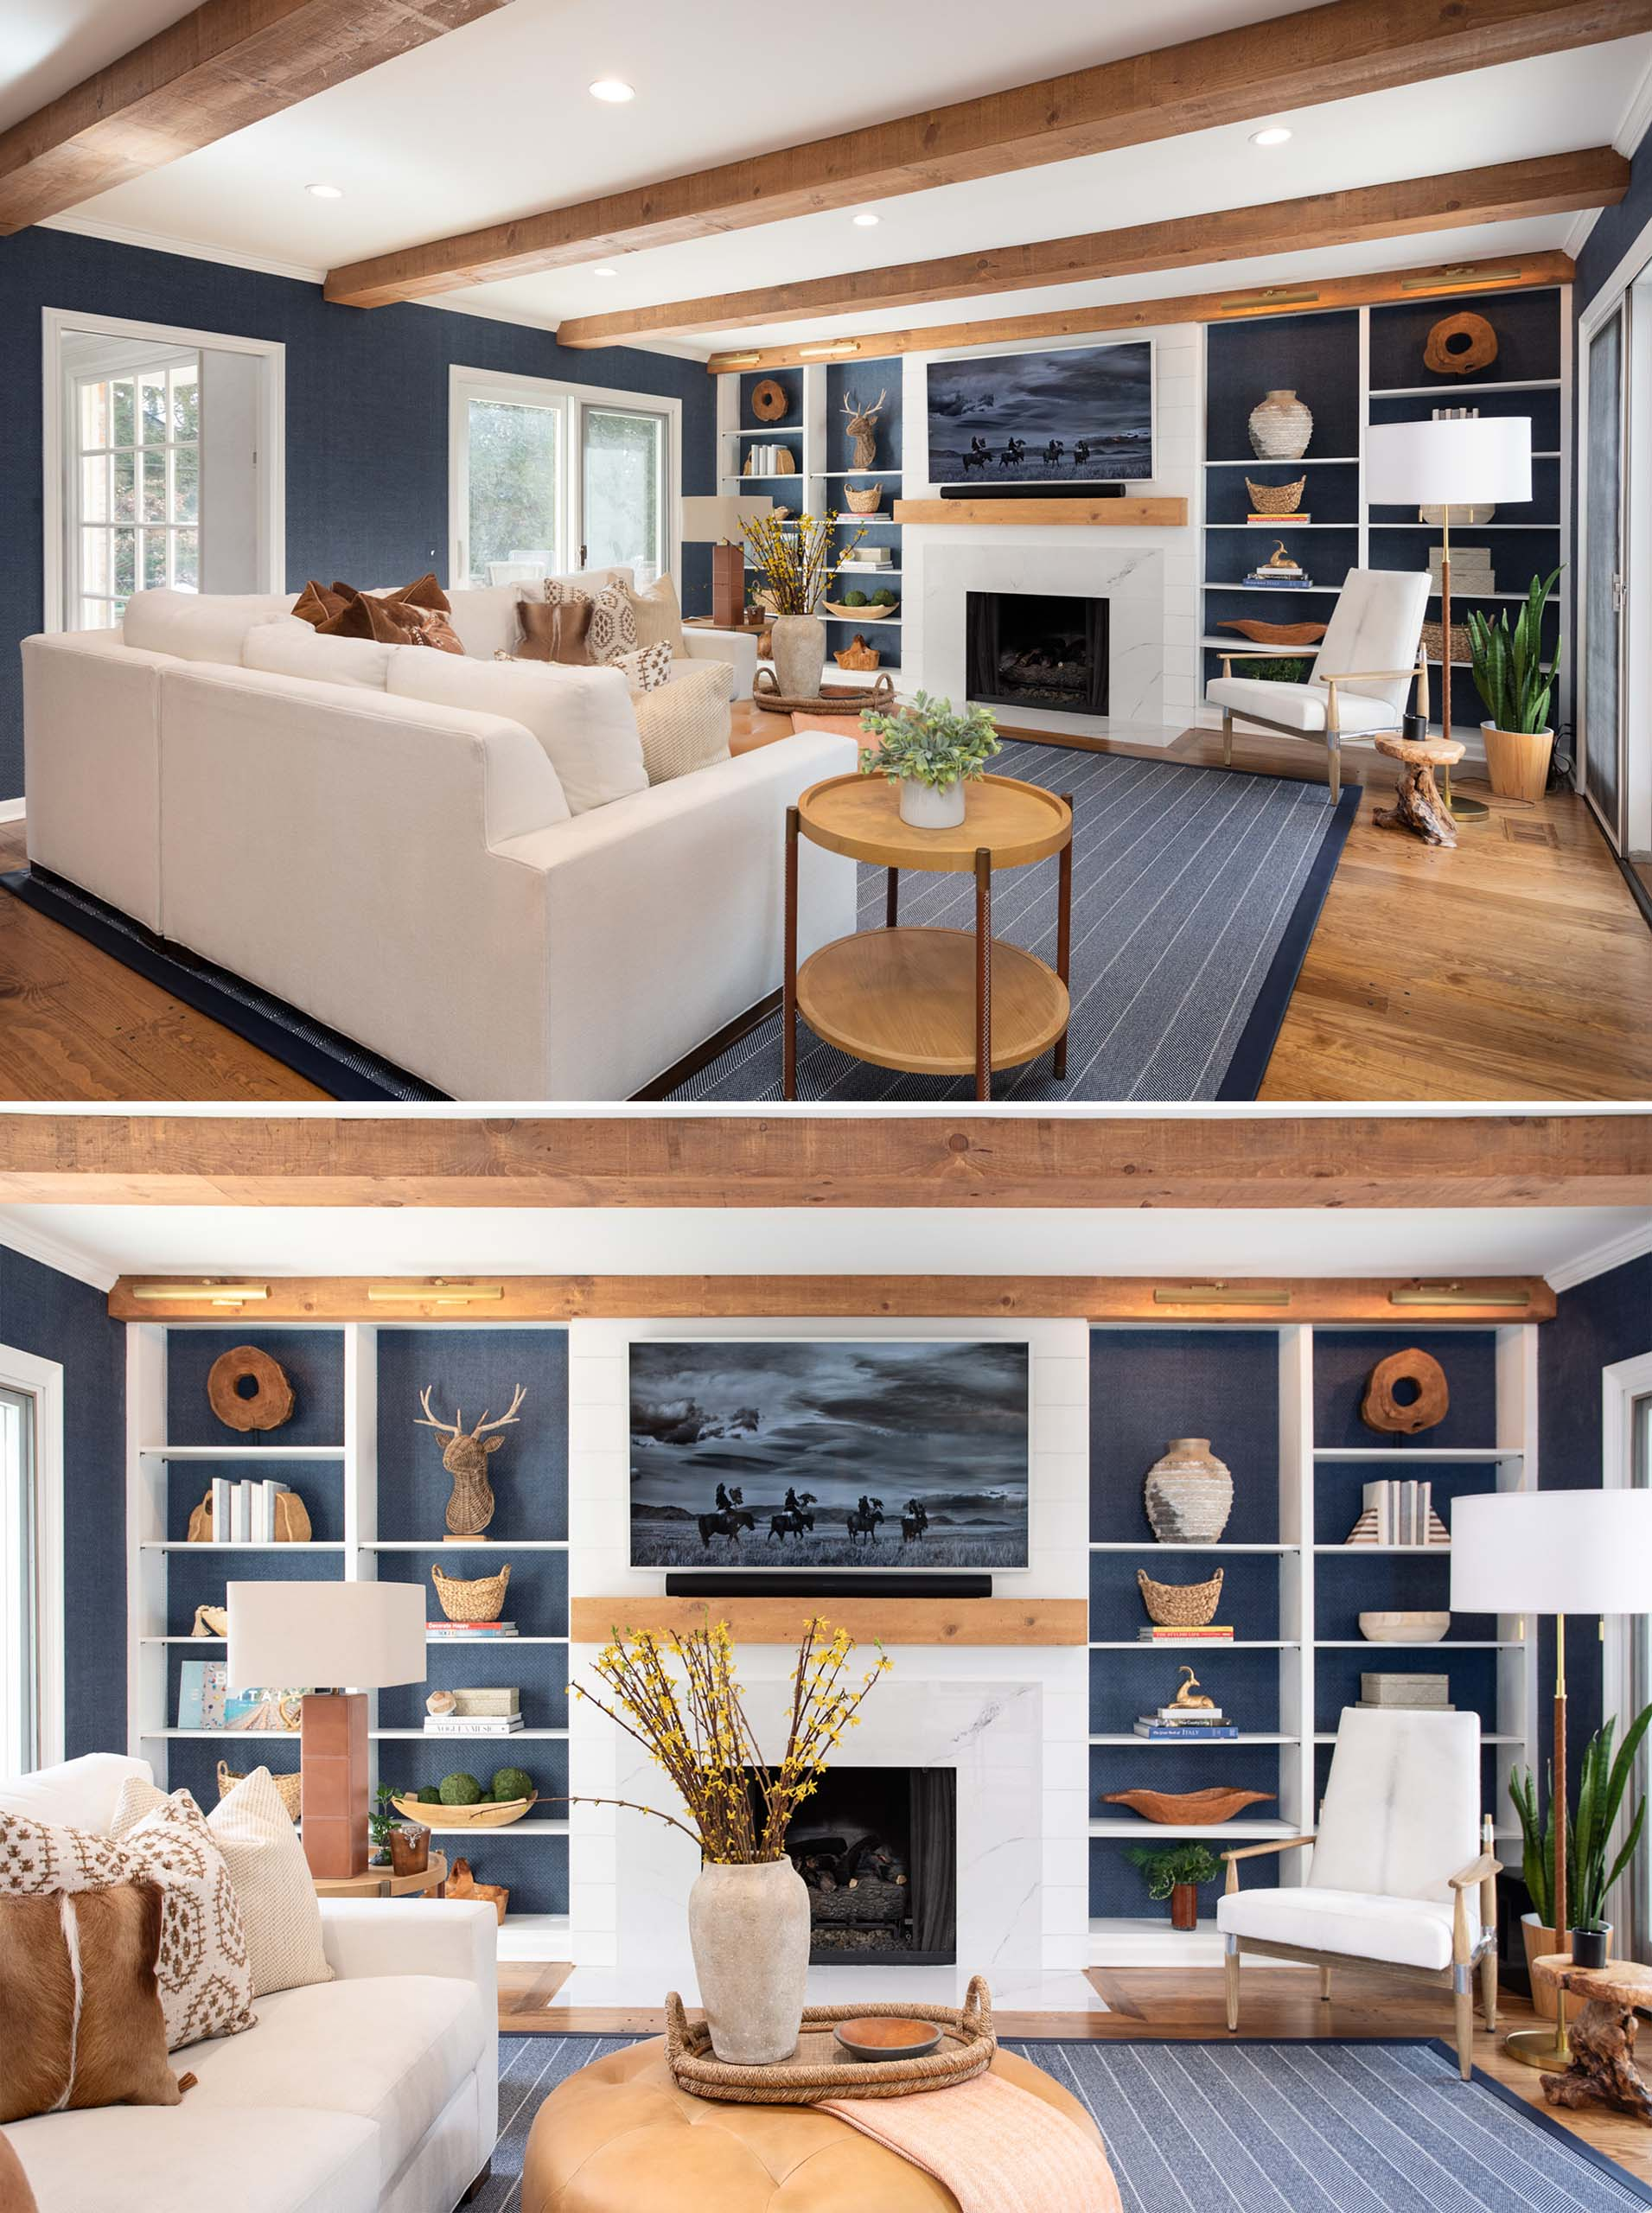 A contemporary living room with a fireplace, plenty of shelves, and walls lined with blue grass, cloth wallpaper.